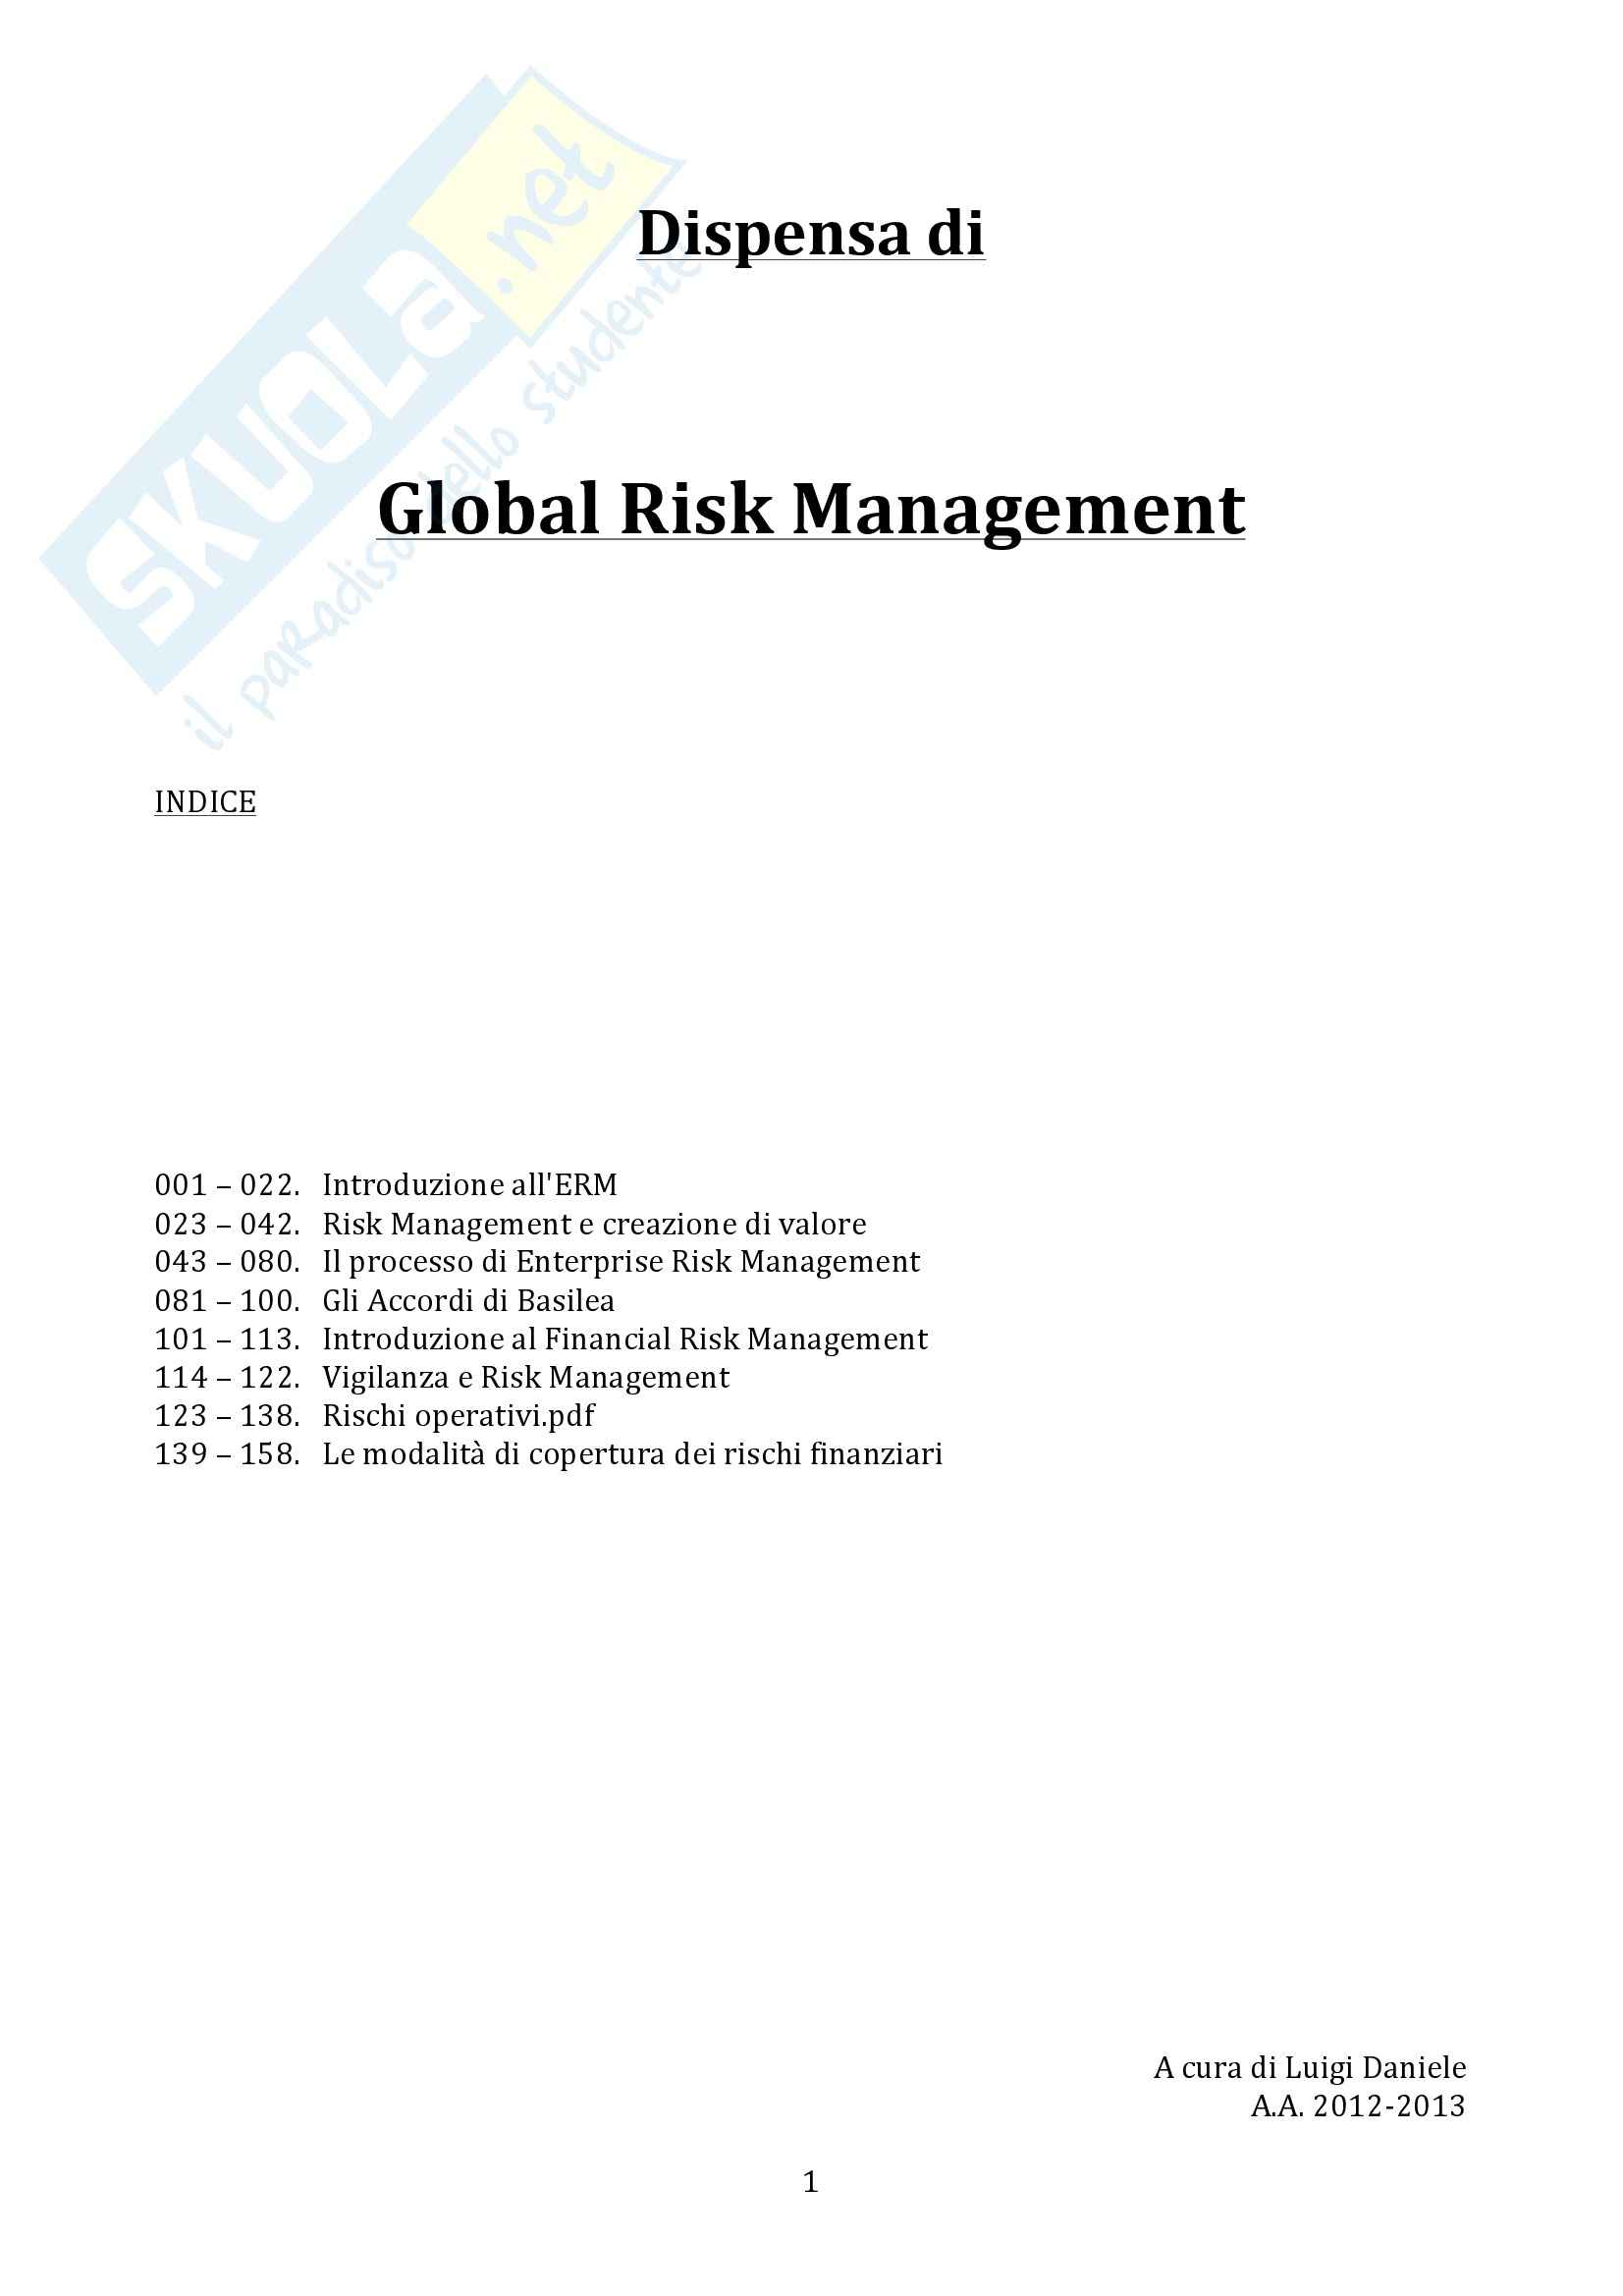 Global Risk Managemet - Appunti